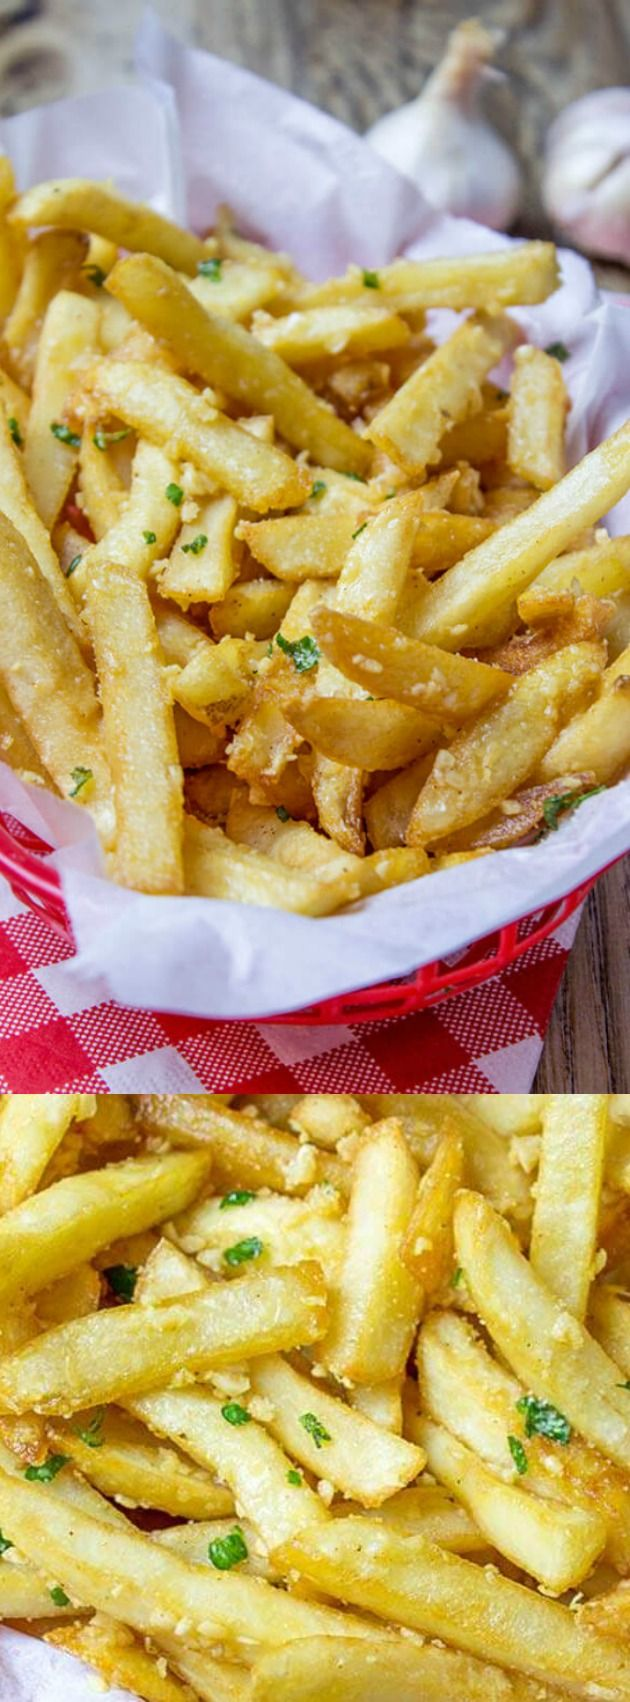 how to best cook fries in oven